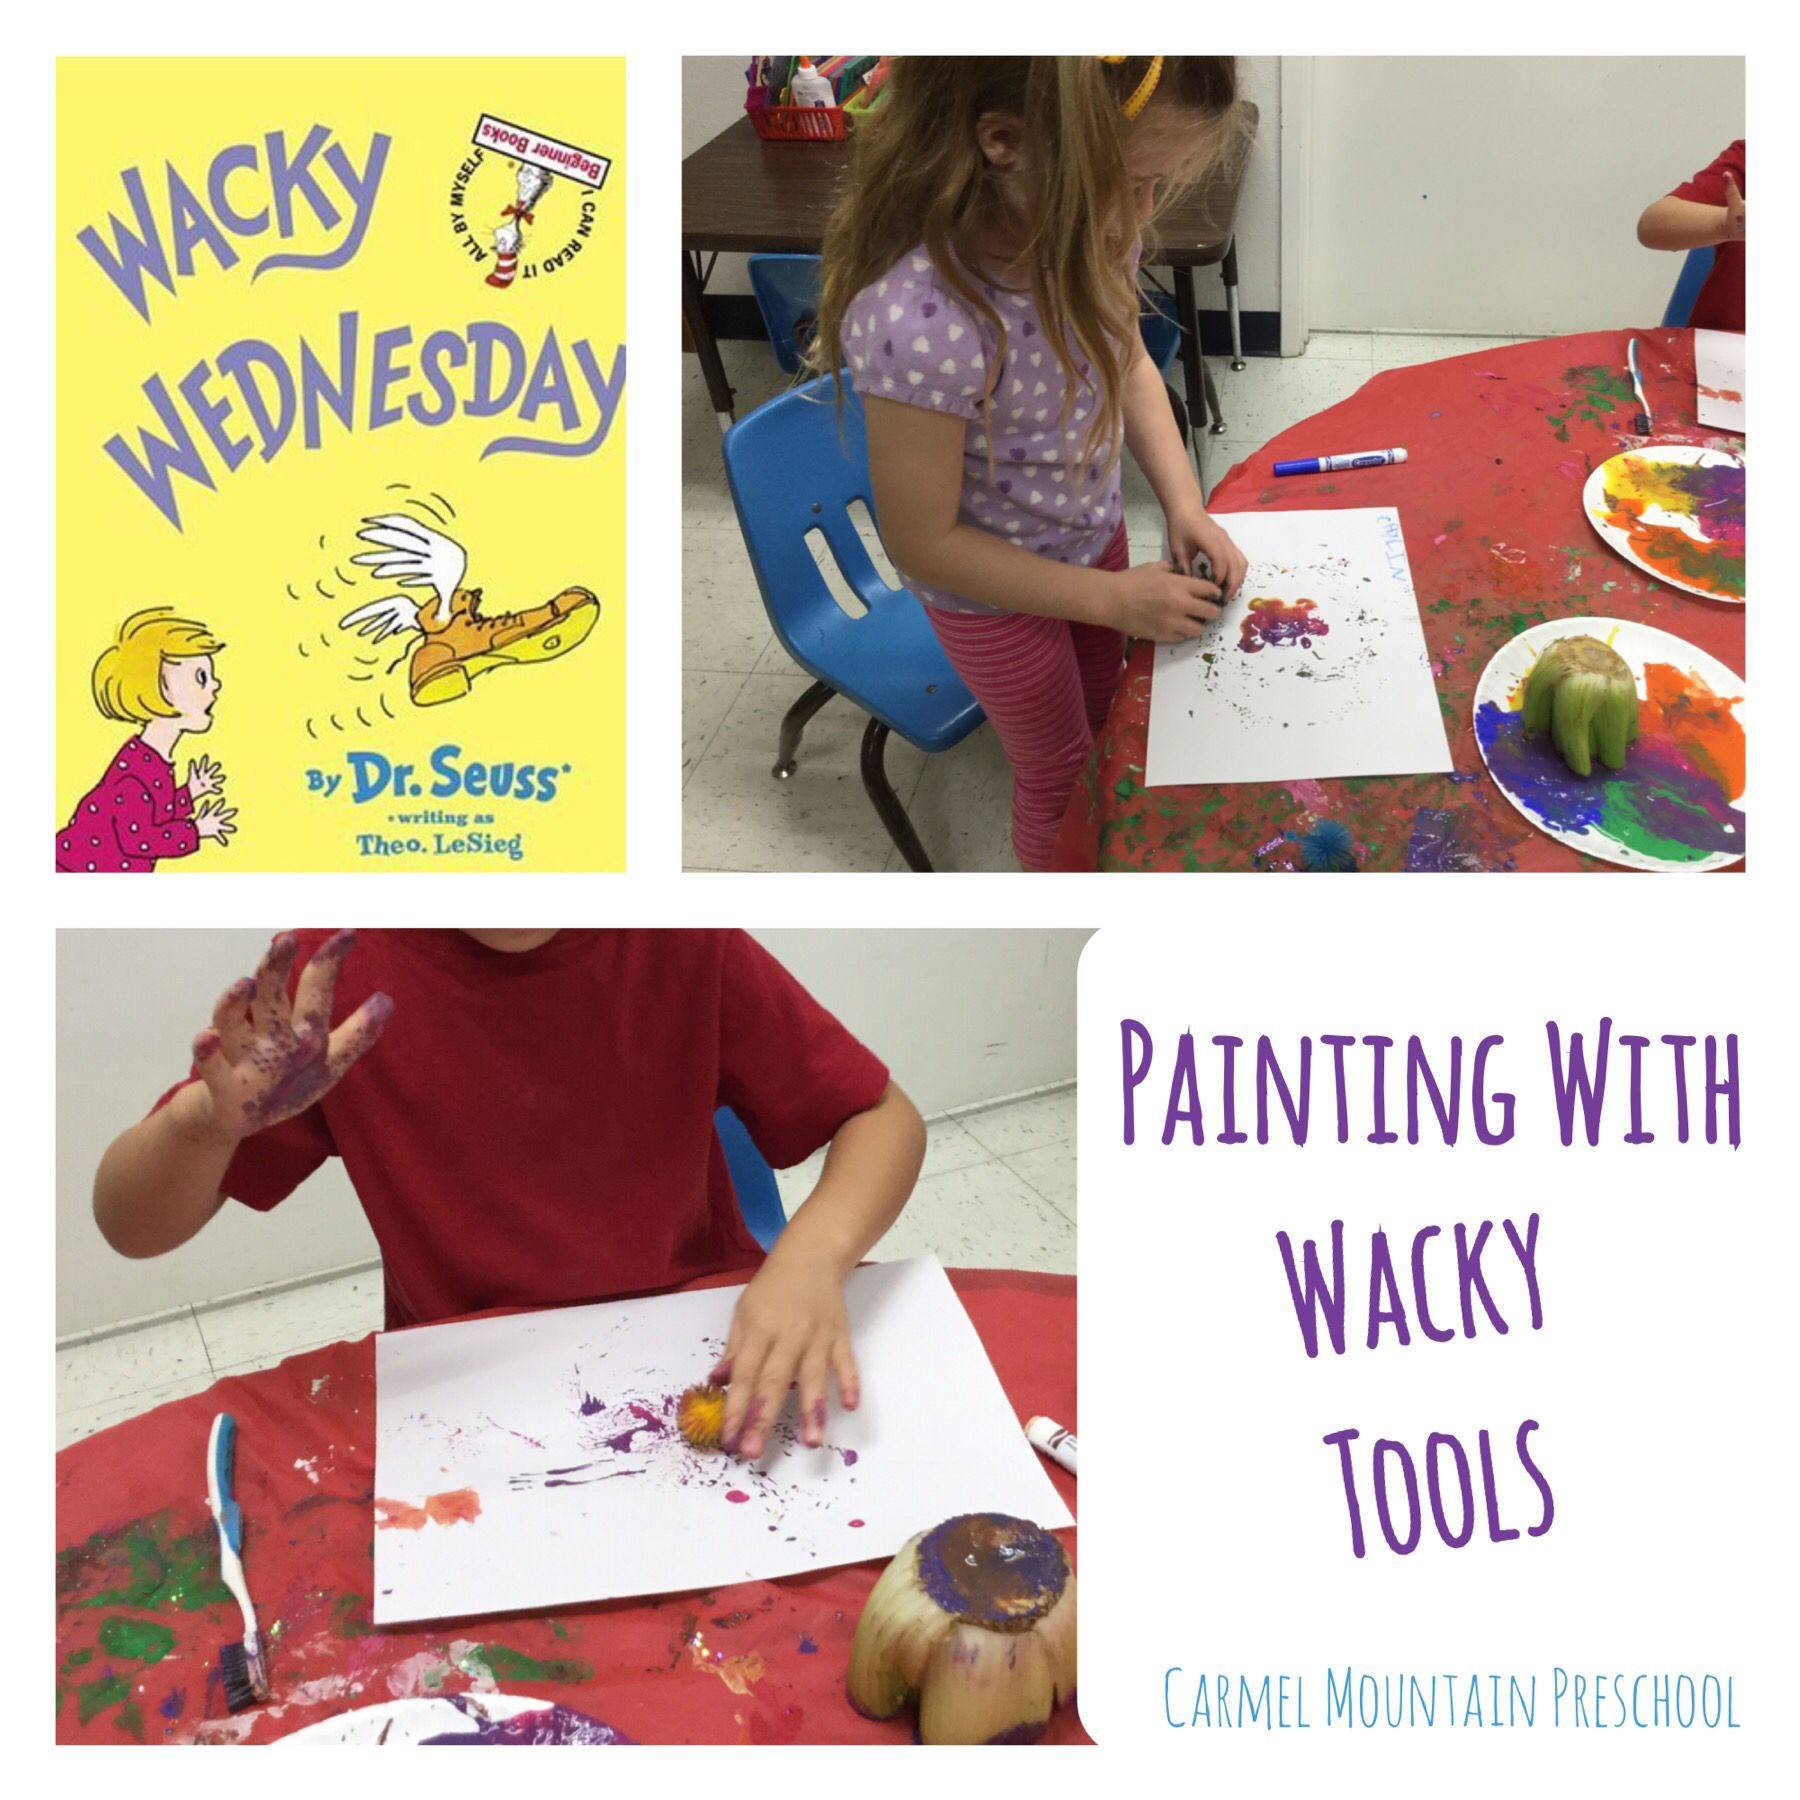 Paint With Anything And Everything For A Wacky Wednesday Activity